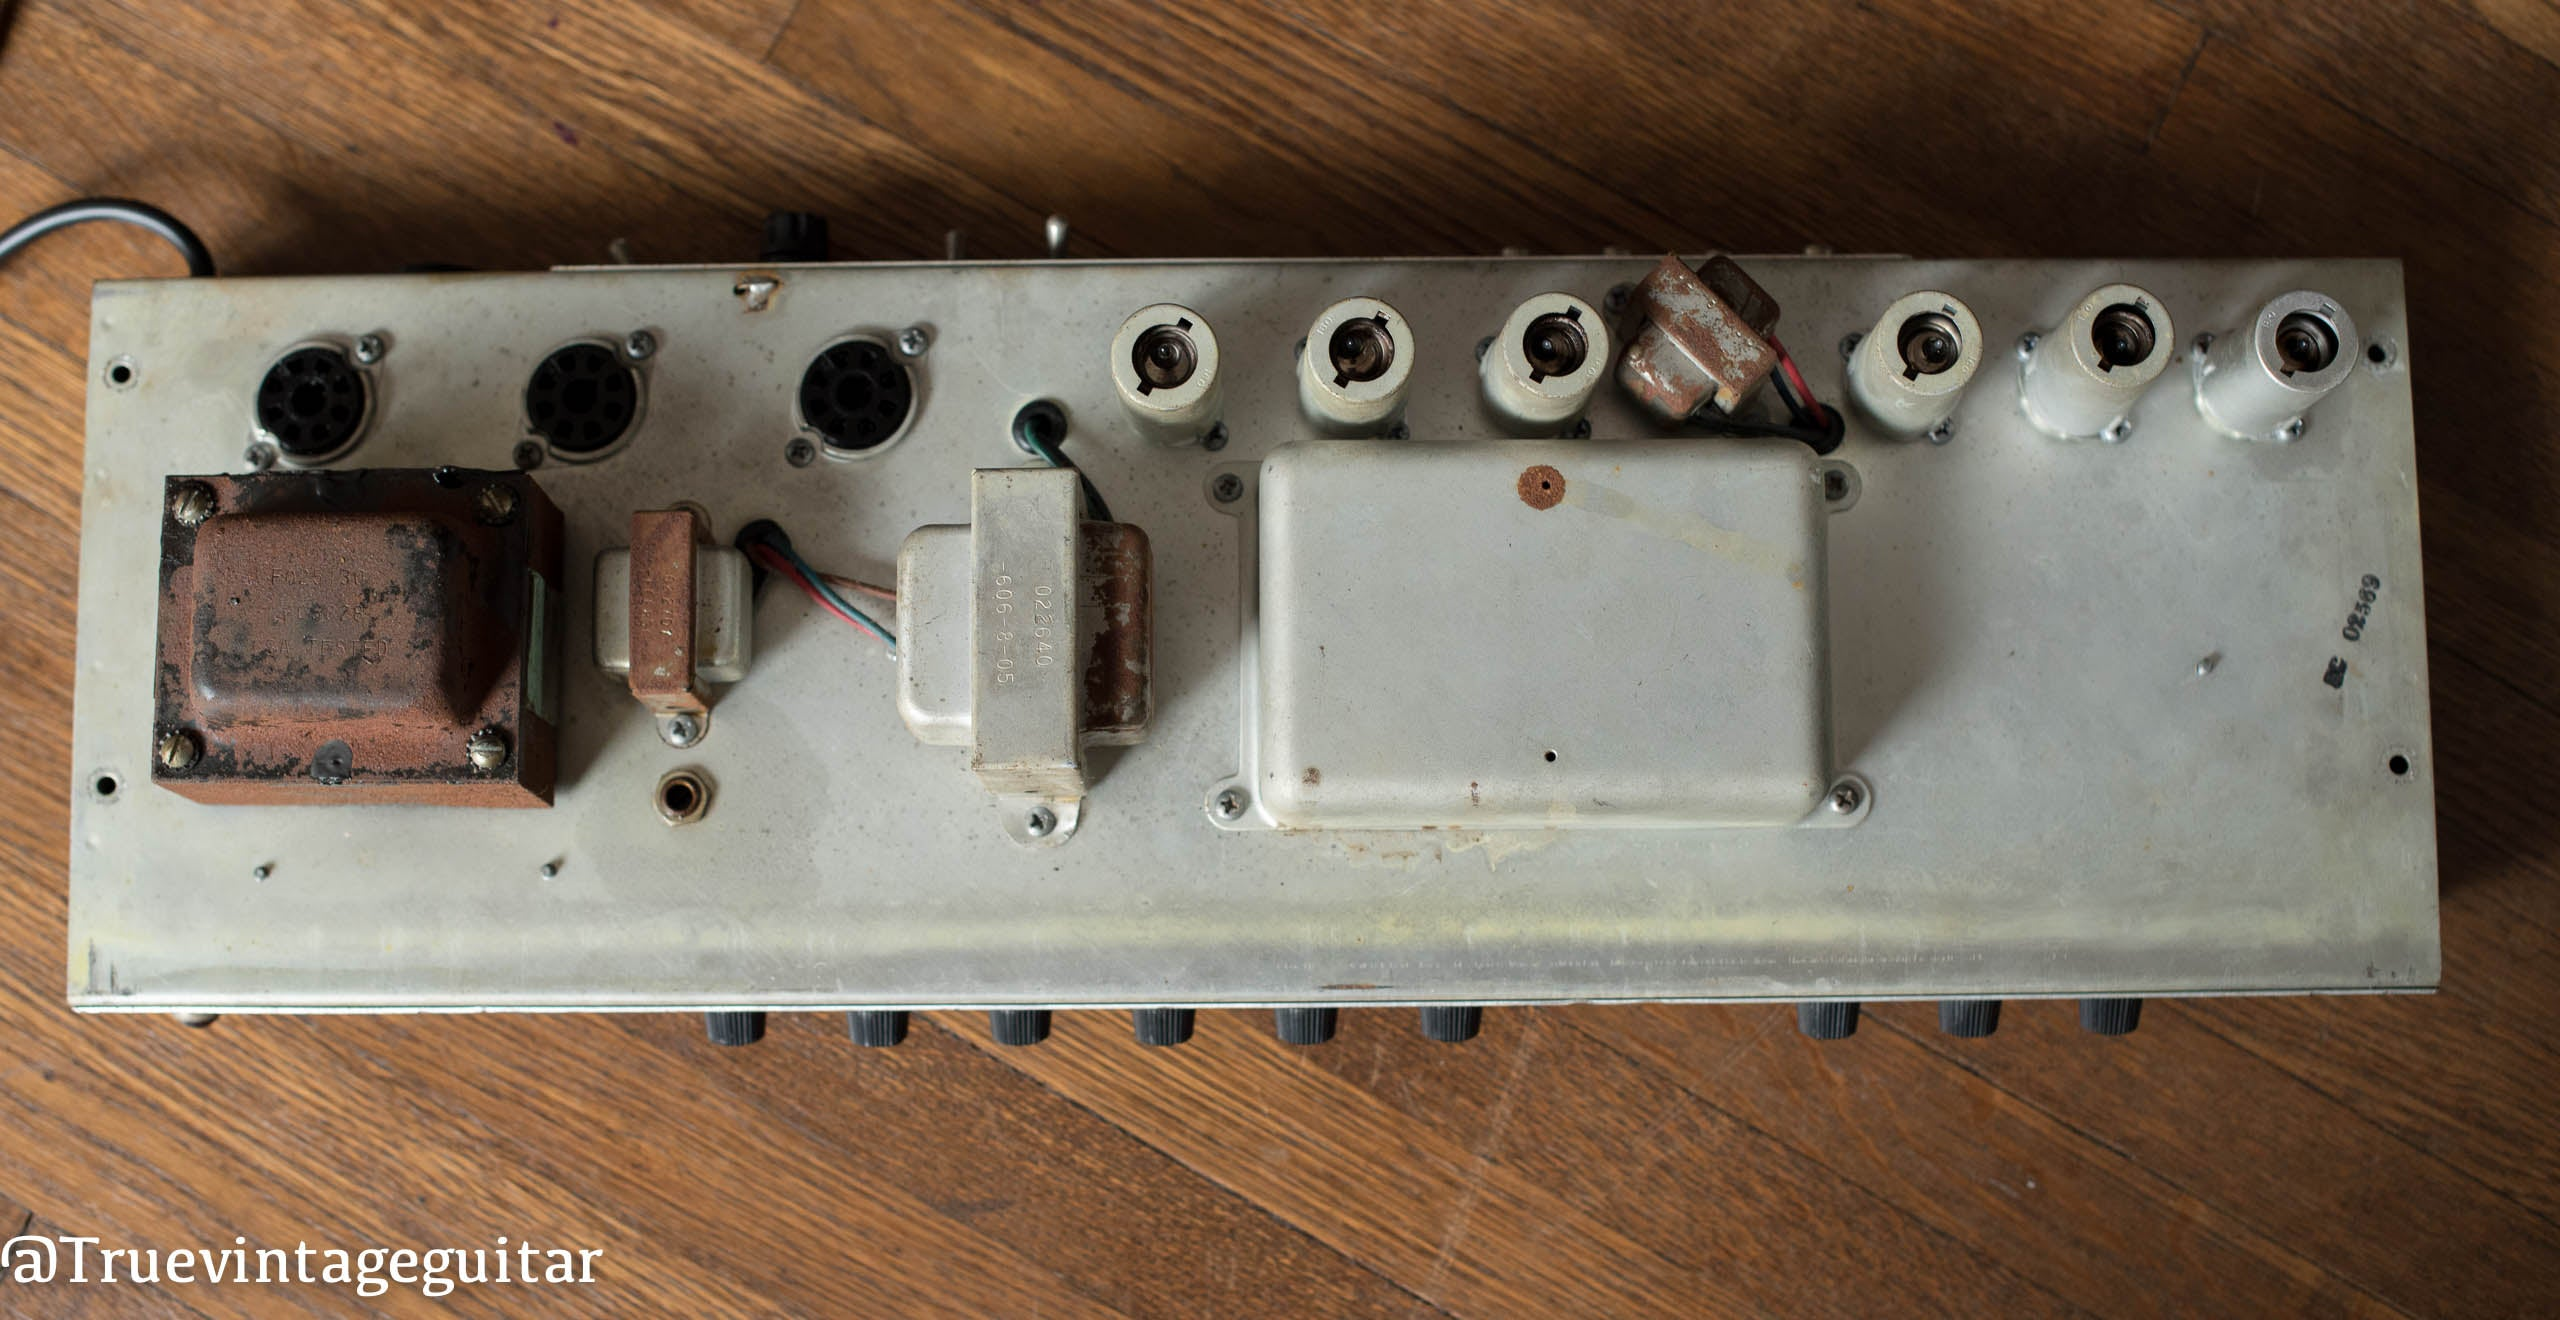 Chassis, output transformer, power transformer, 1969 Fender Deluxe Reverb